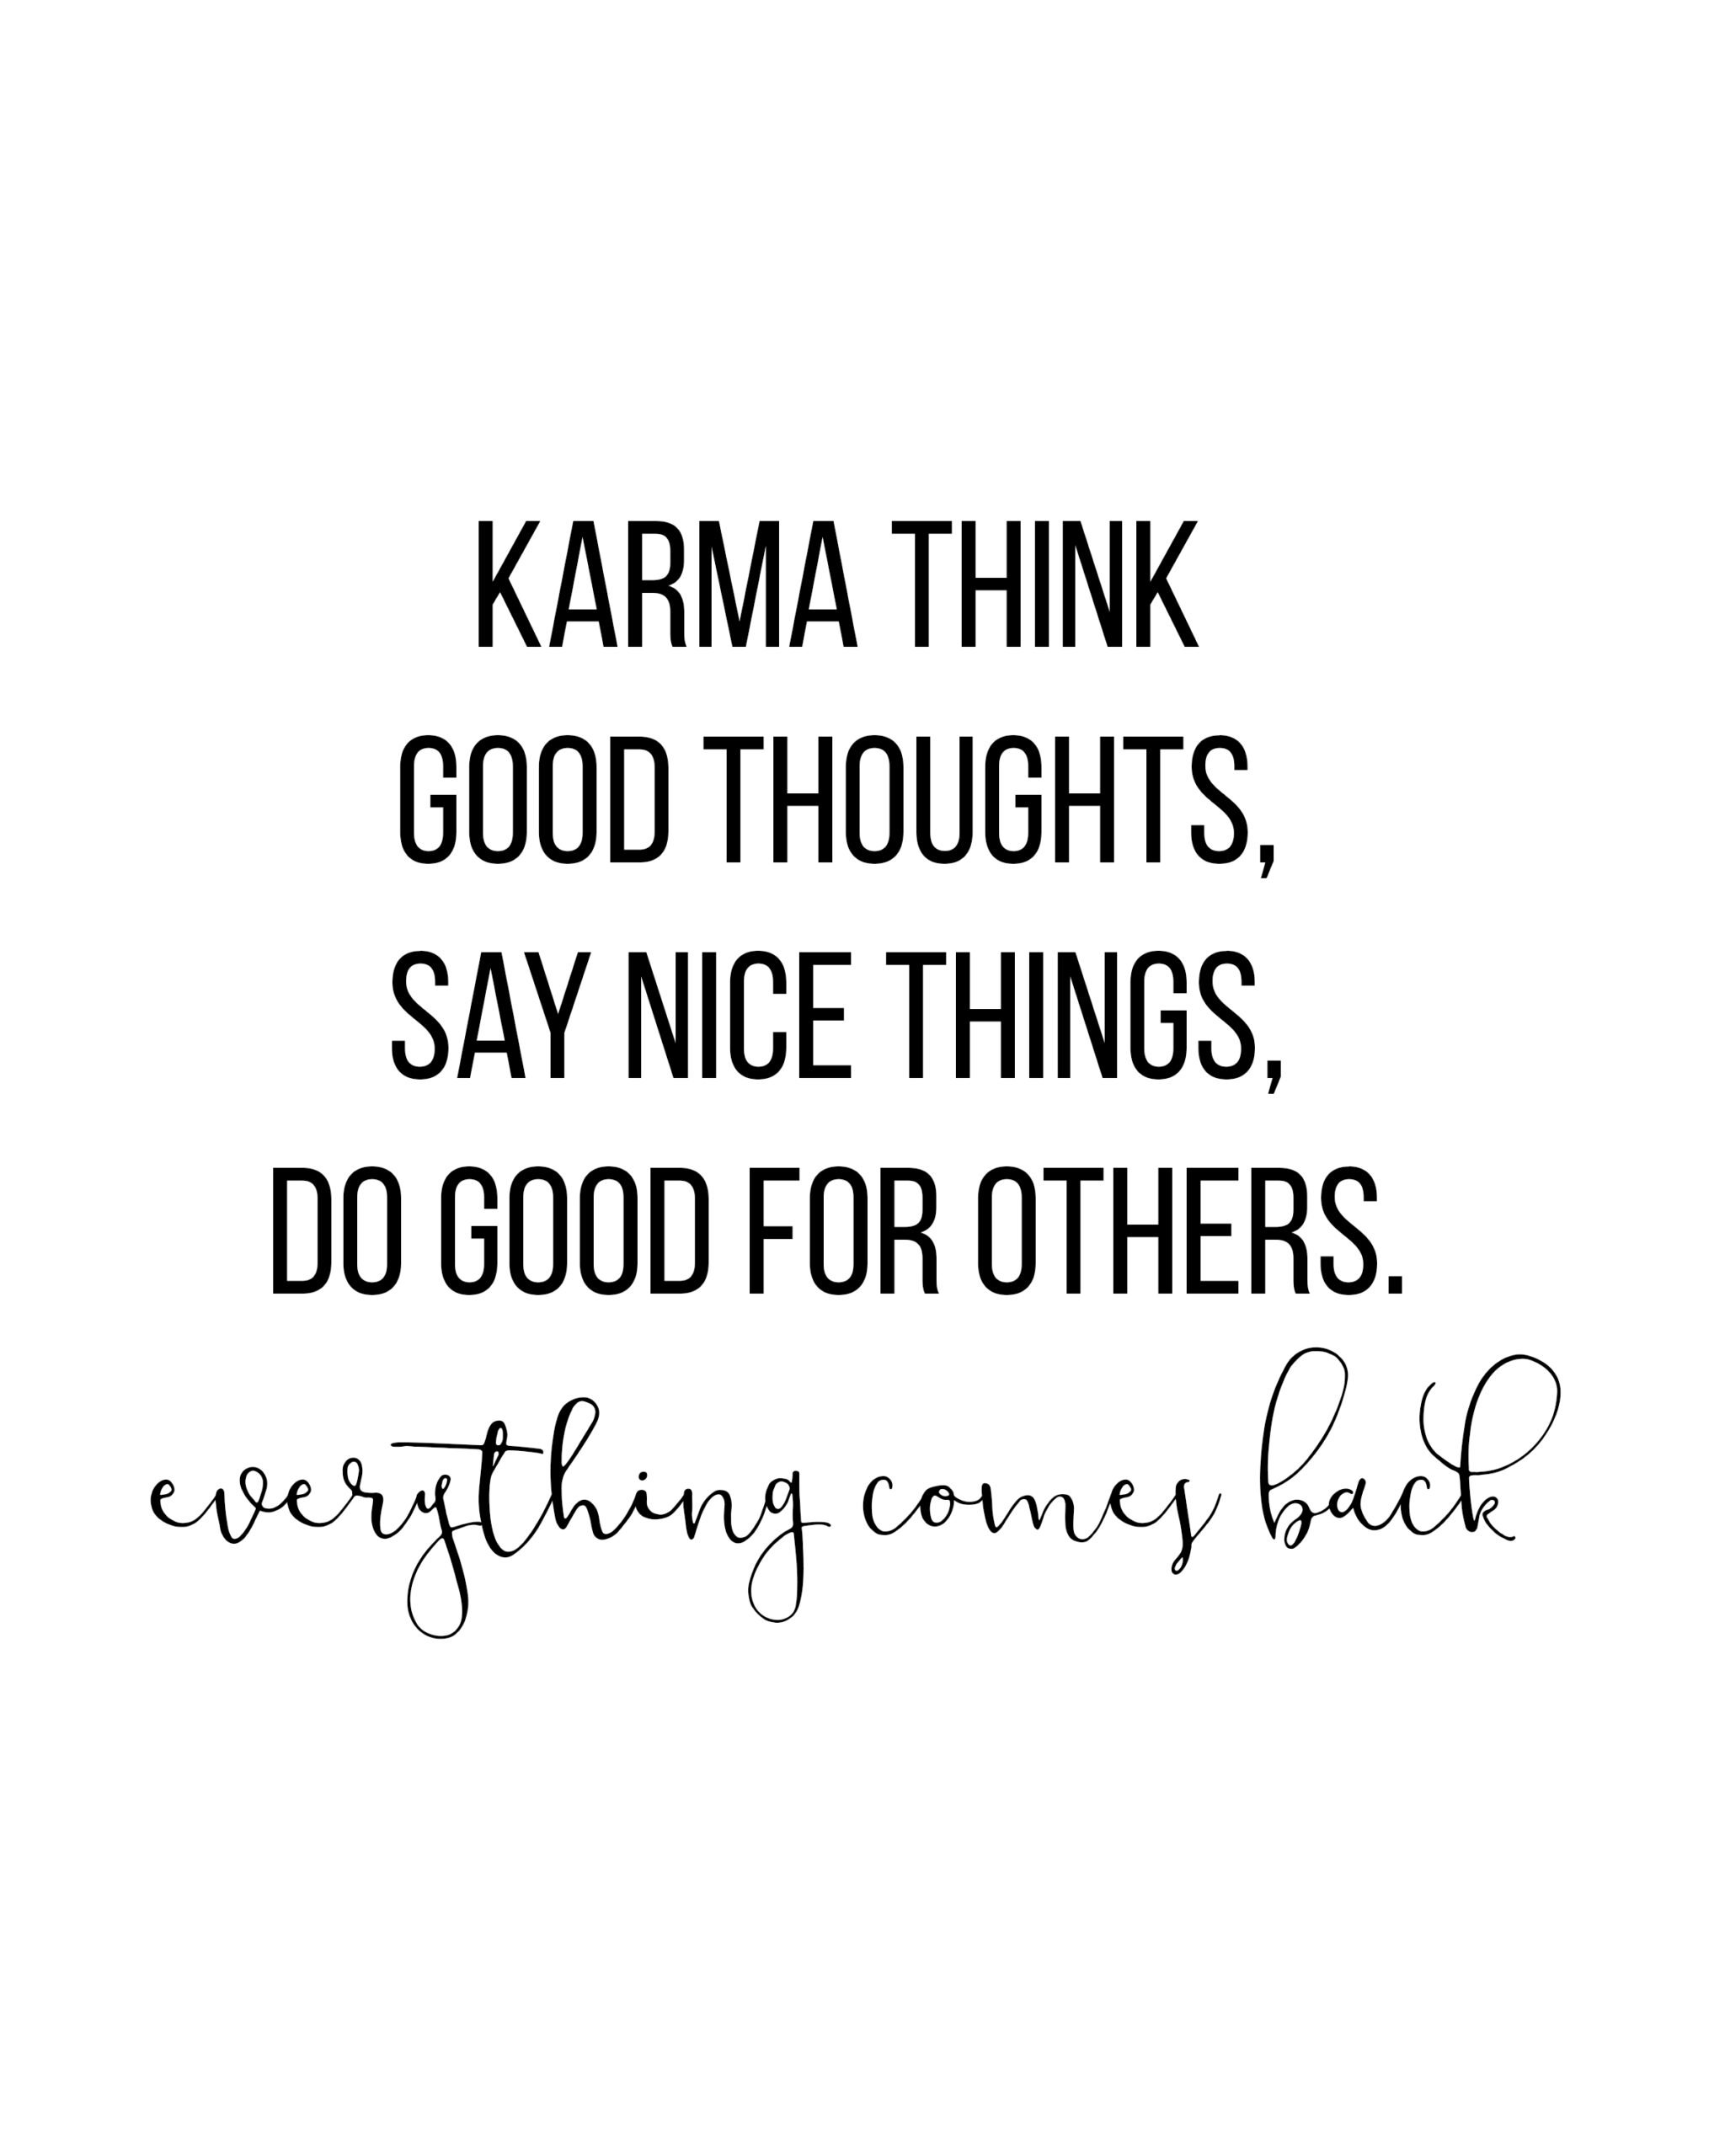 Karma Thinks Good Thoughts Say Nice Things. Do Good For Others. Everything Comes Back.